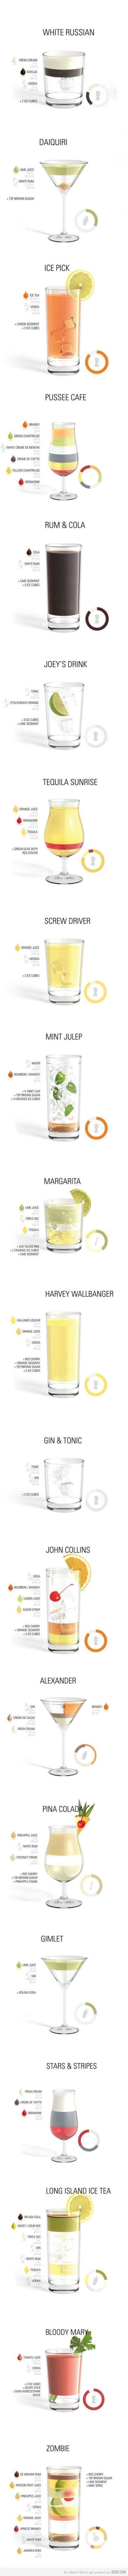 Learn how to make coctails